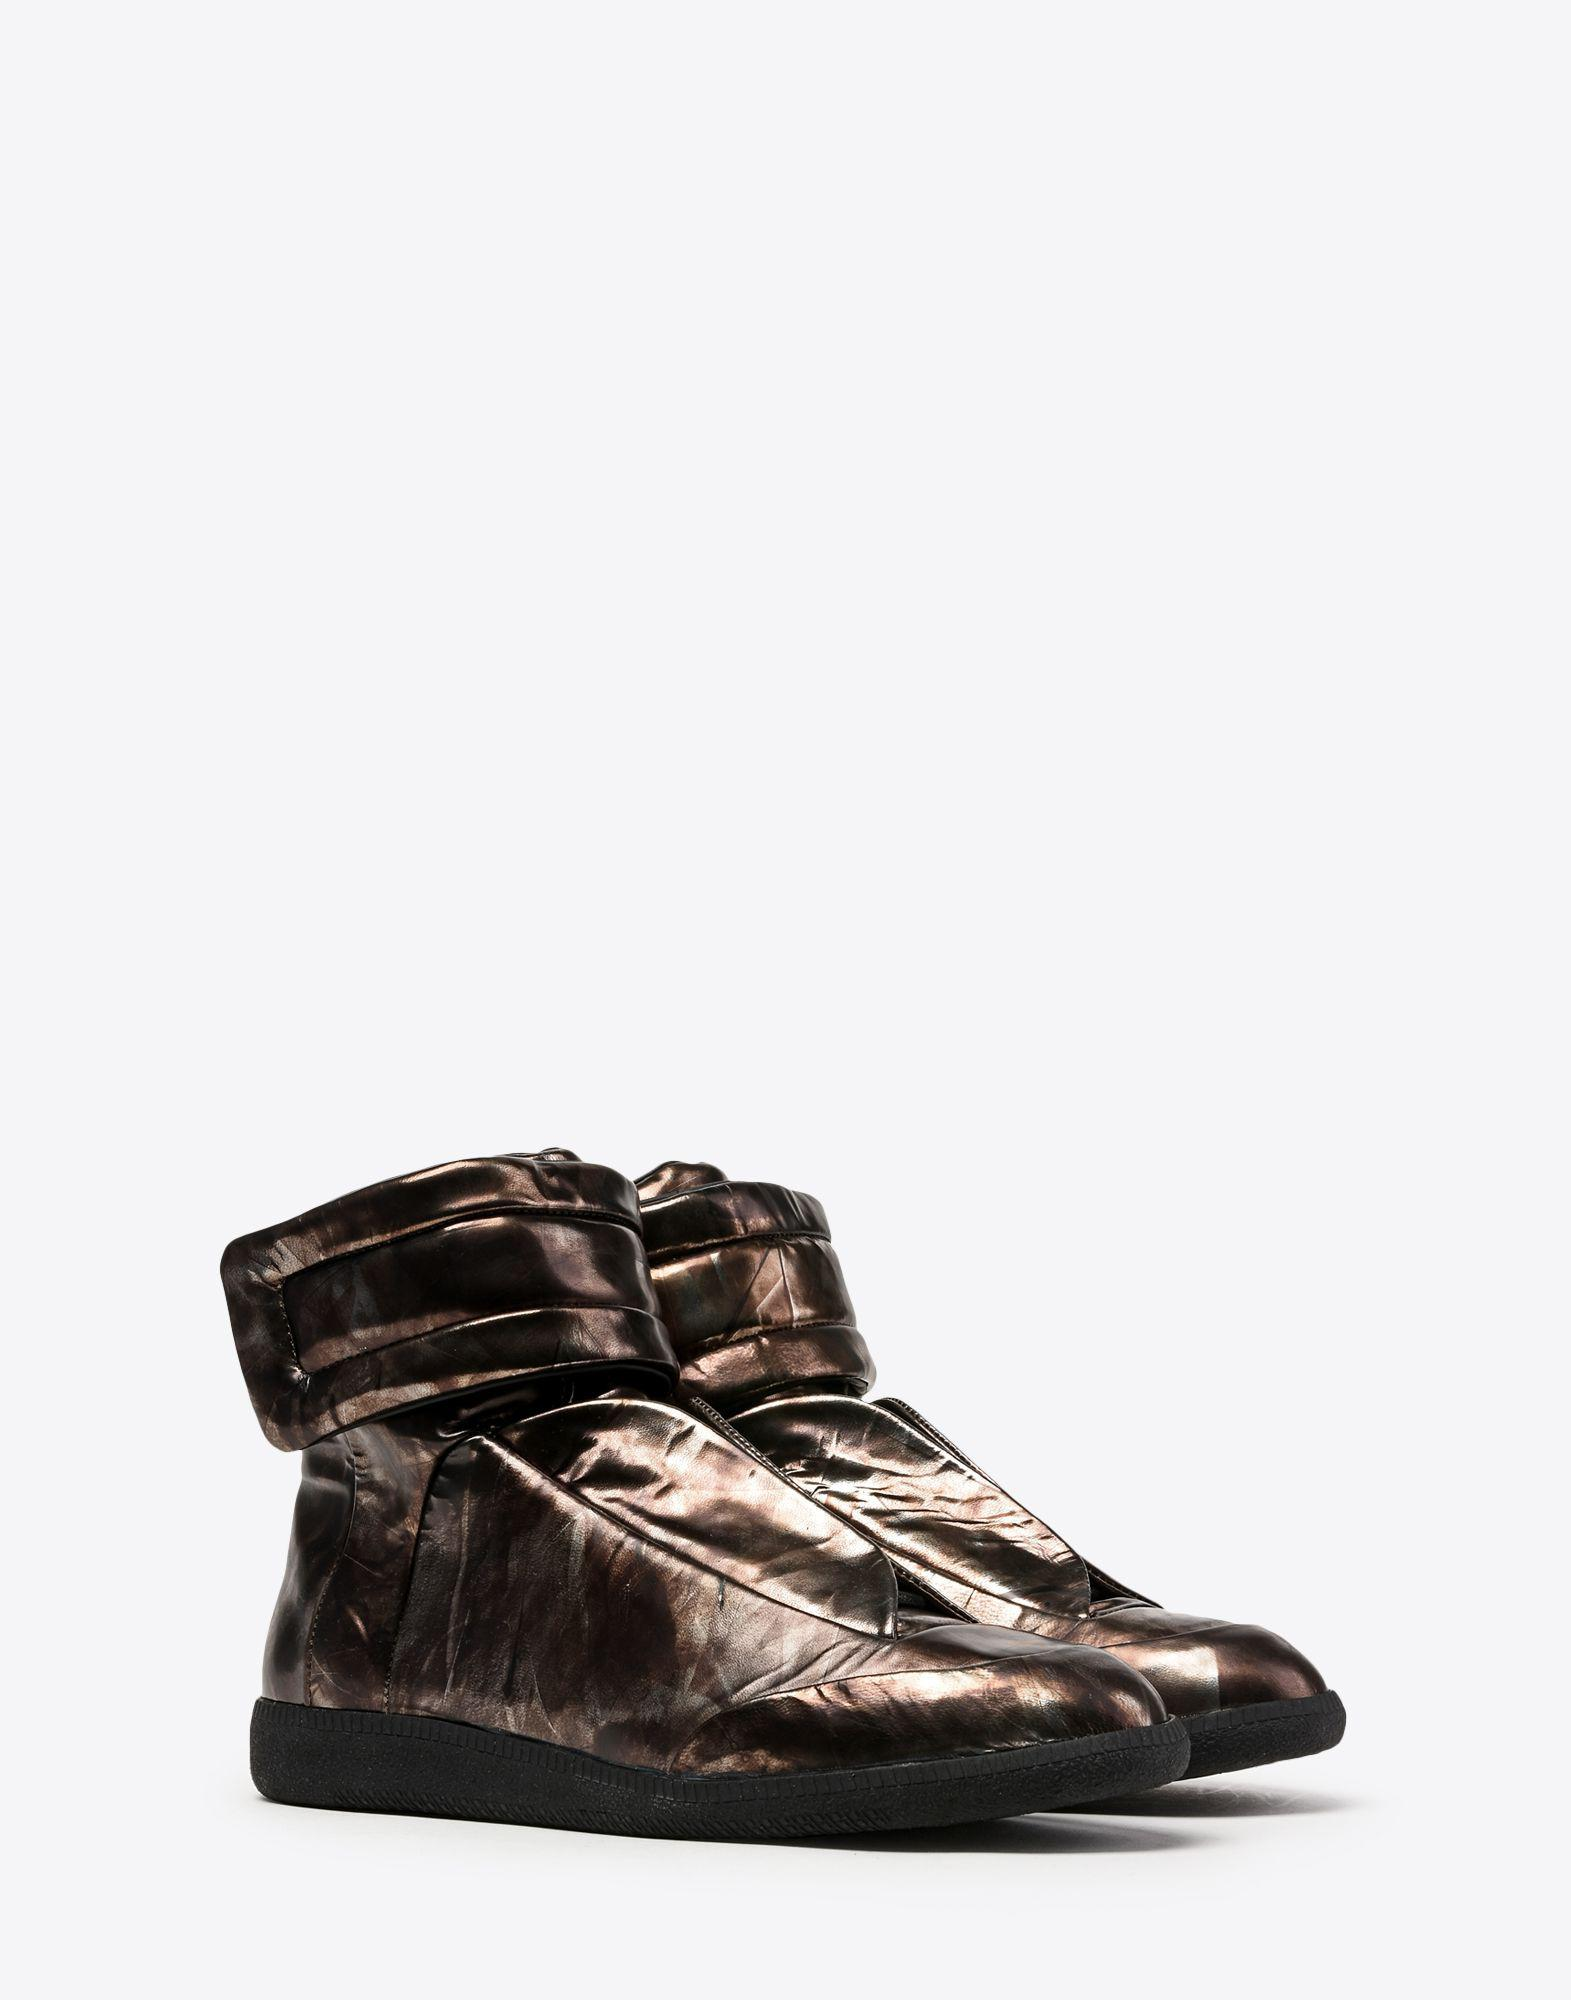 Maison Margiela Future High Top Sneakers In Metallic Leather in Steel Grey (Grey)